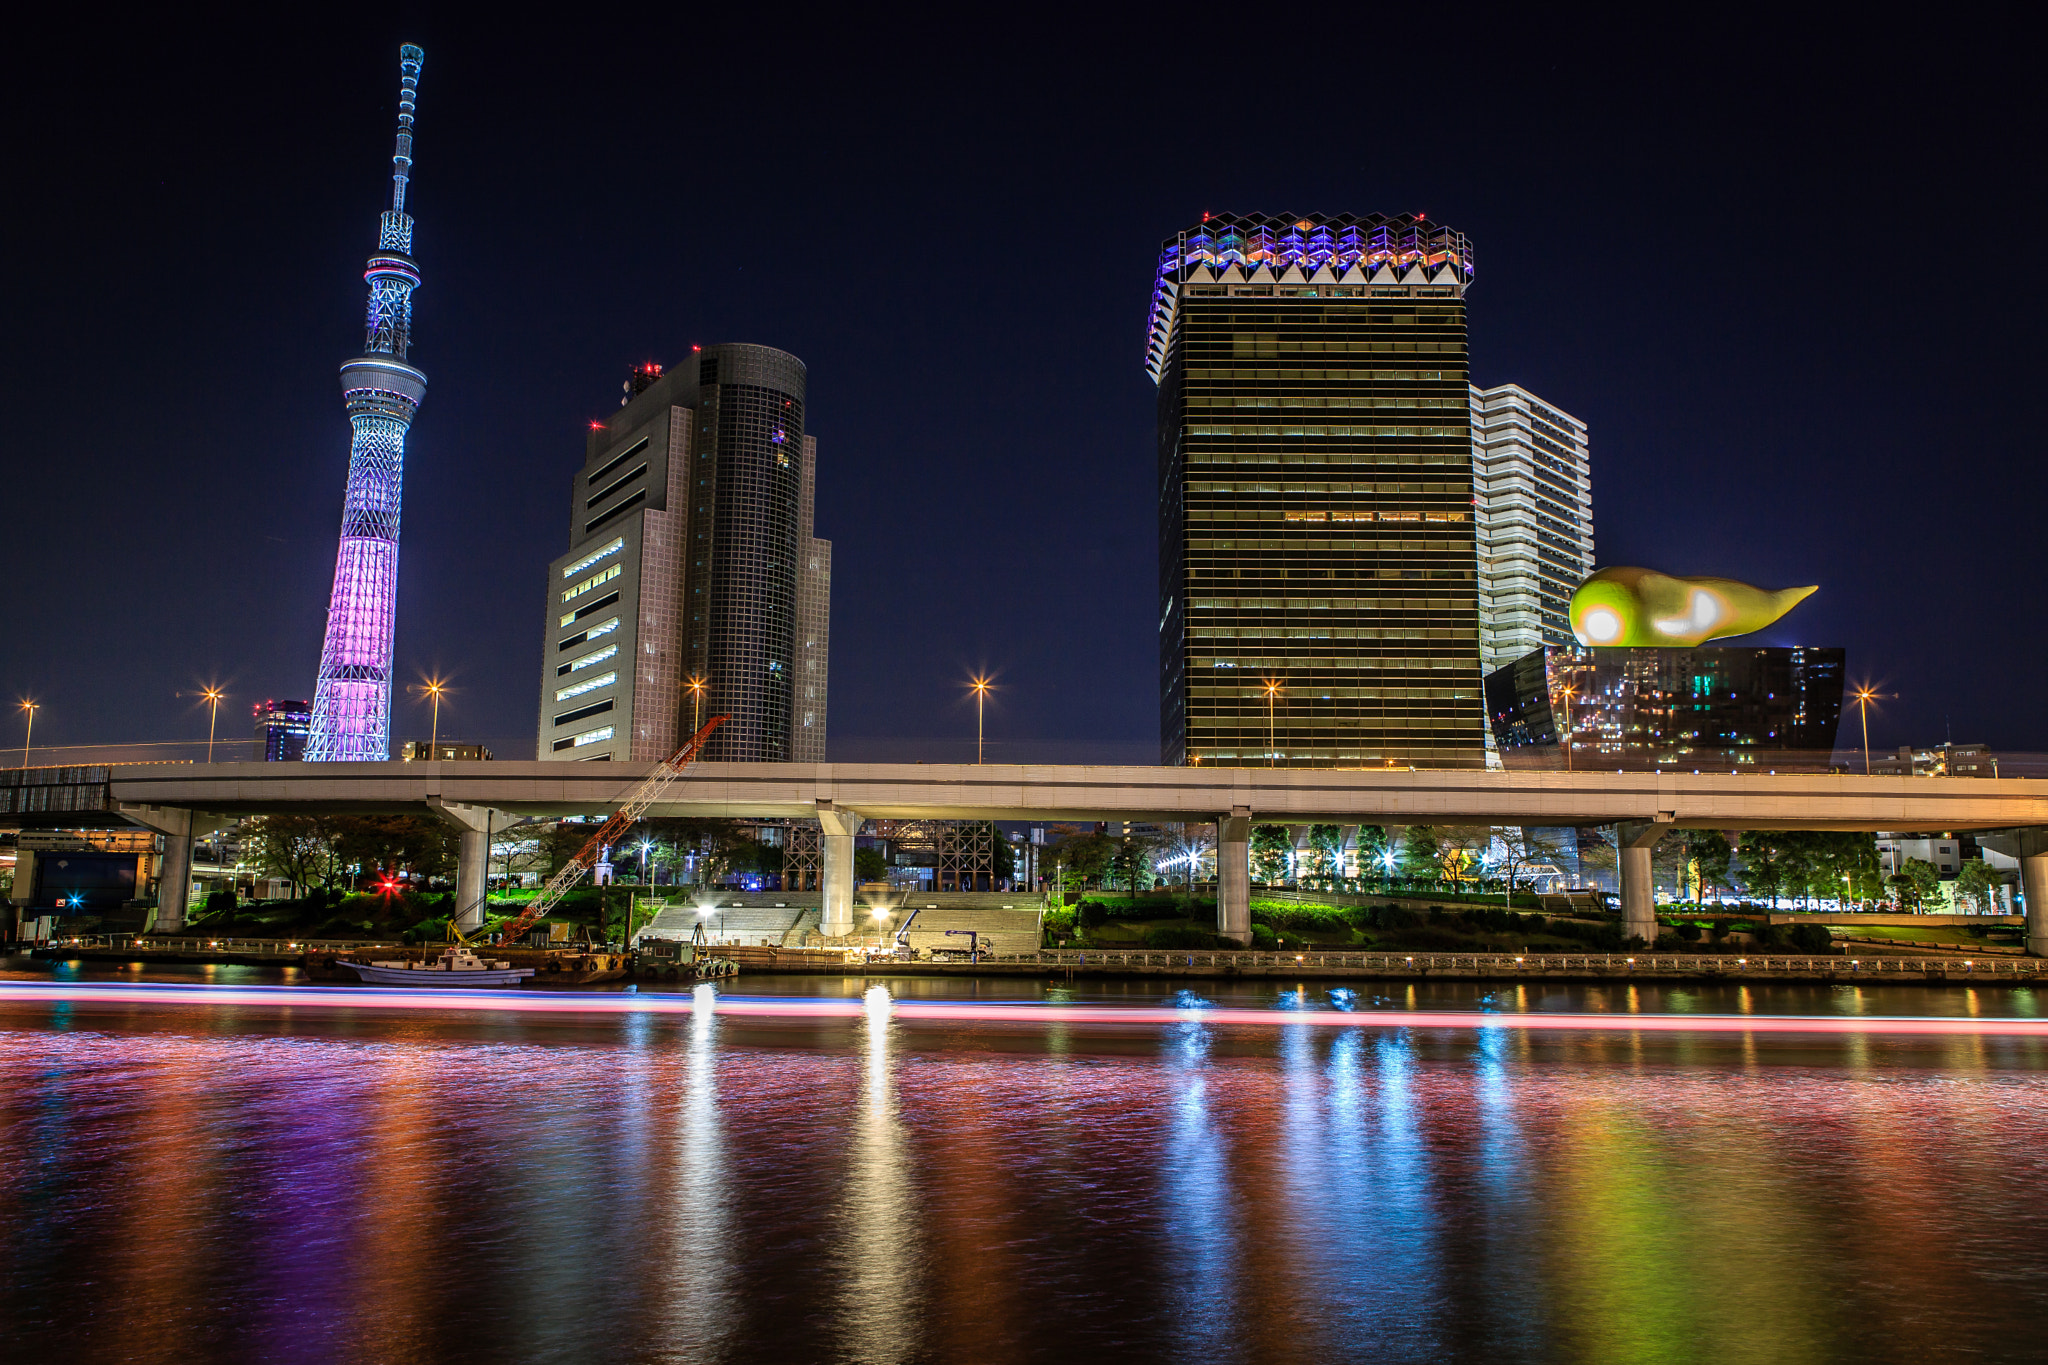 Photograph Tokyo Skytree by Huy Tonthat on 500px